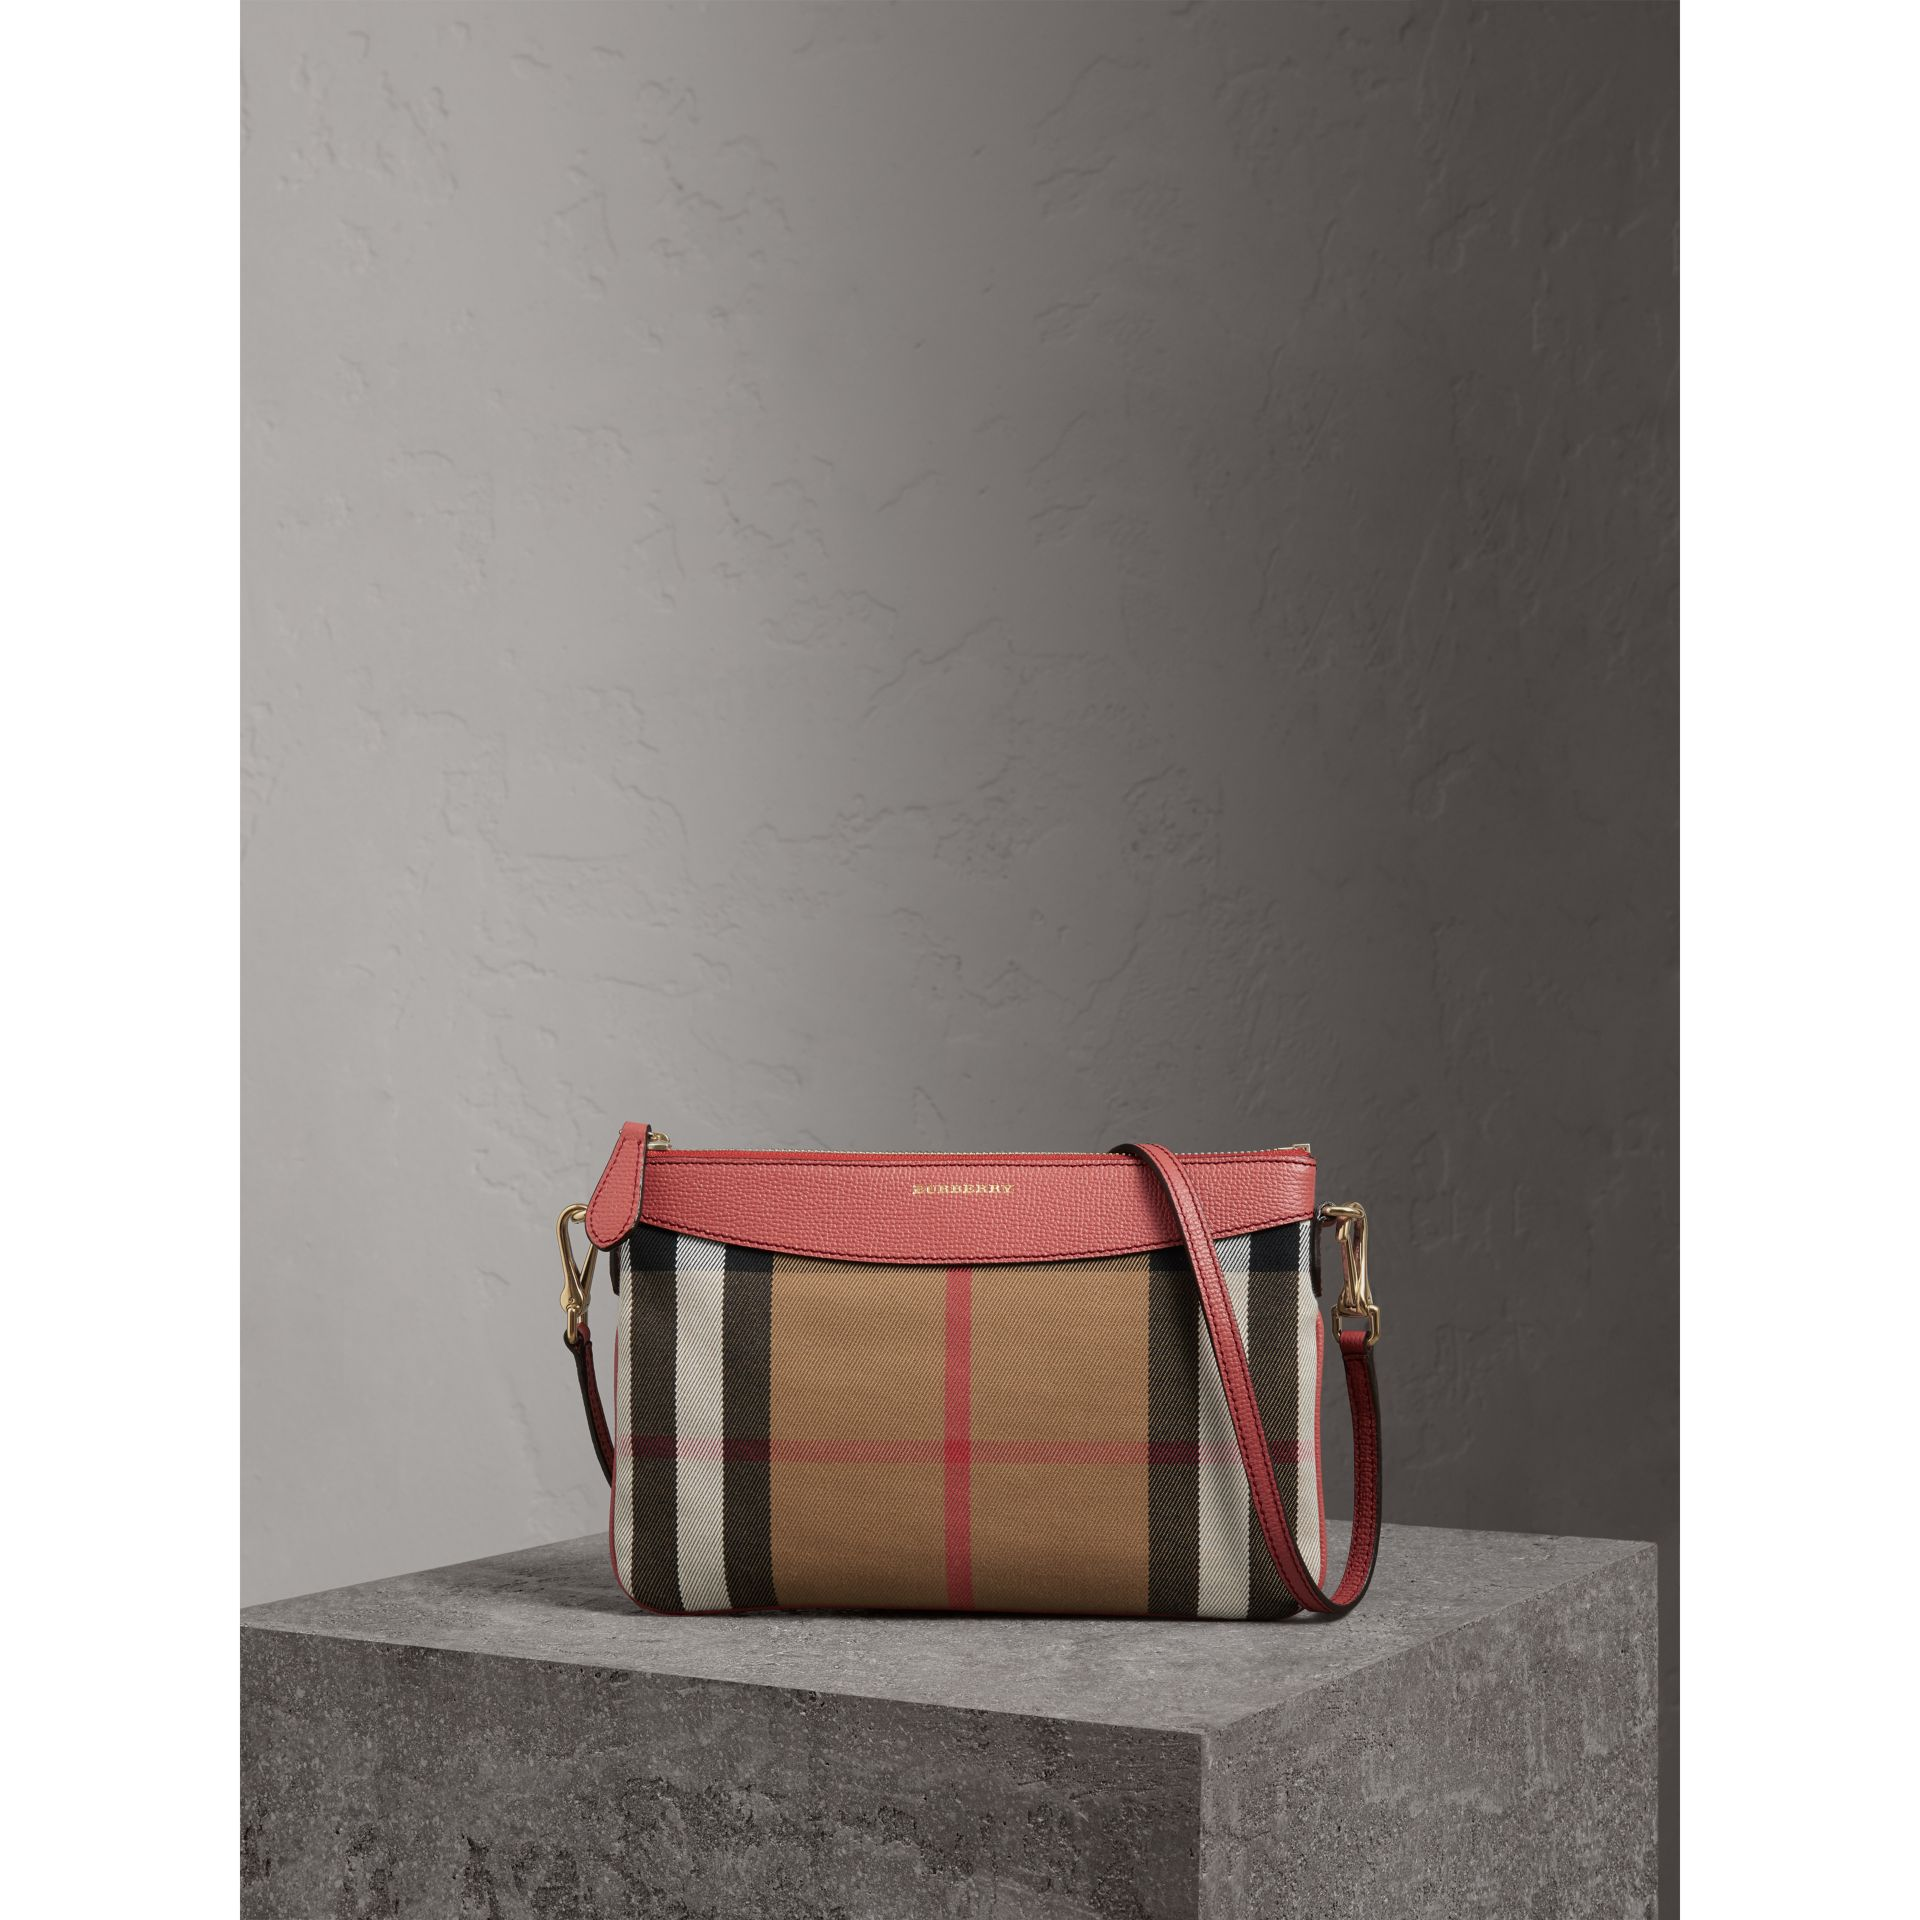 57d40135bb23 Burberry Haymarket Check And Two-Tone Leather Clutch Bag In Red ...